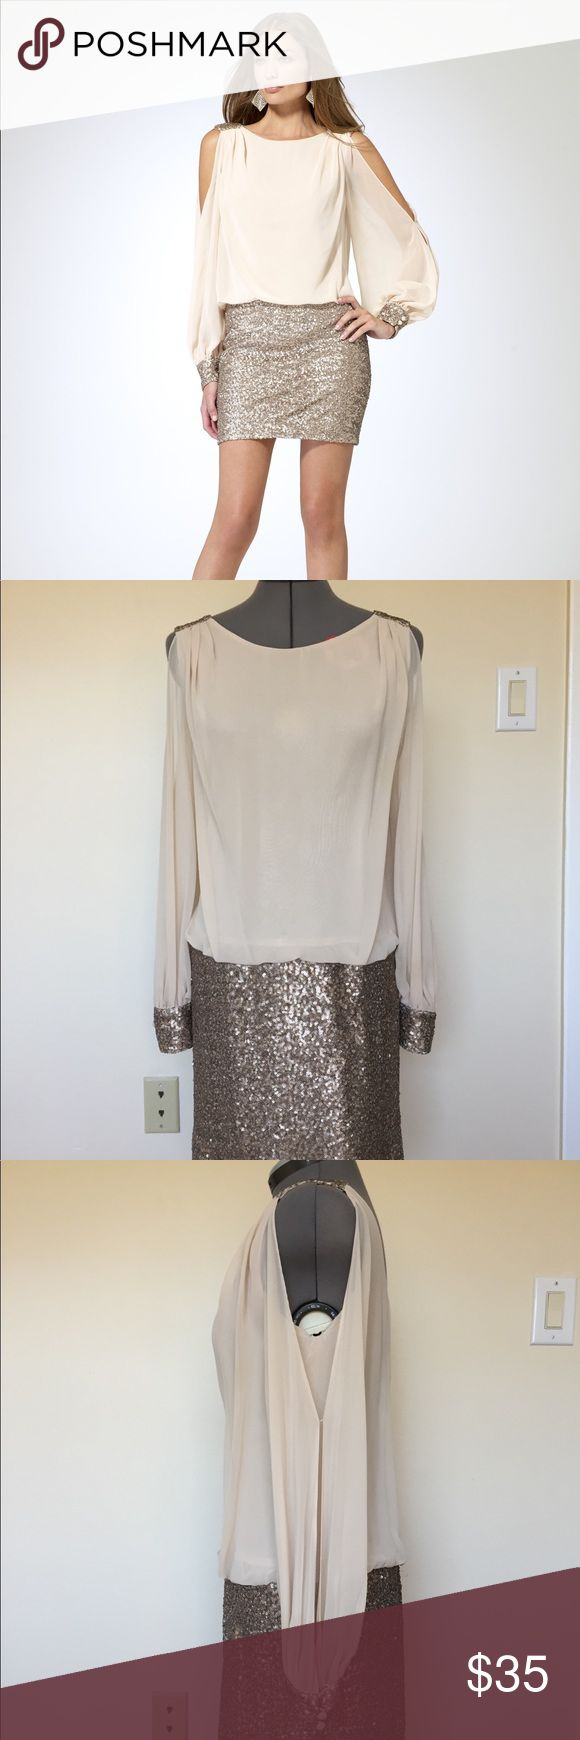 Cache Sequin Cream Long Open Sleeve Dress A beautiful dress that is perfect for any party! It is a one piece that has a sequined bottom and a flowy cream top. The sheer sleeves are slit open and it has a scoop neckline. The material on the inside is smooth so it can go on easily. It has a zipper in the back. Its in great condition and there are no flaws. ⚠️Contains: Polyester and Elastane ⚠️Length: 33.5 in. ⚠️Pit-to-Pit: 17.5 in. ⚠️Sleeve Length: 23.5 in. Cache Dresses Long Sleeve